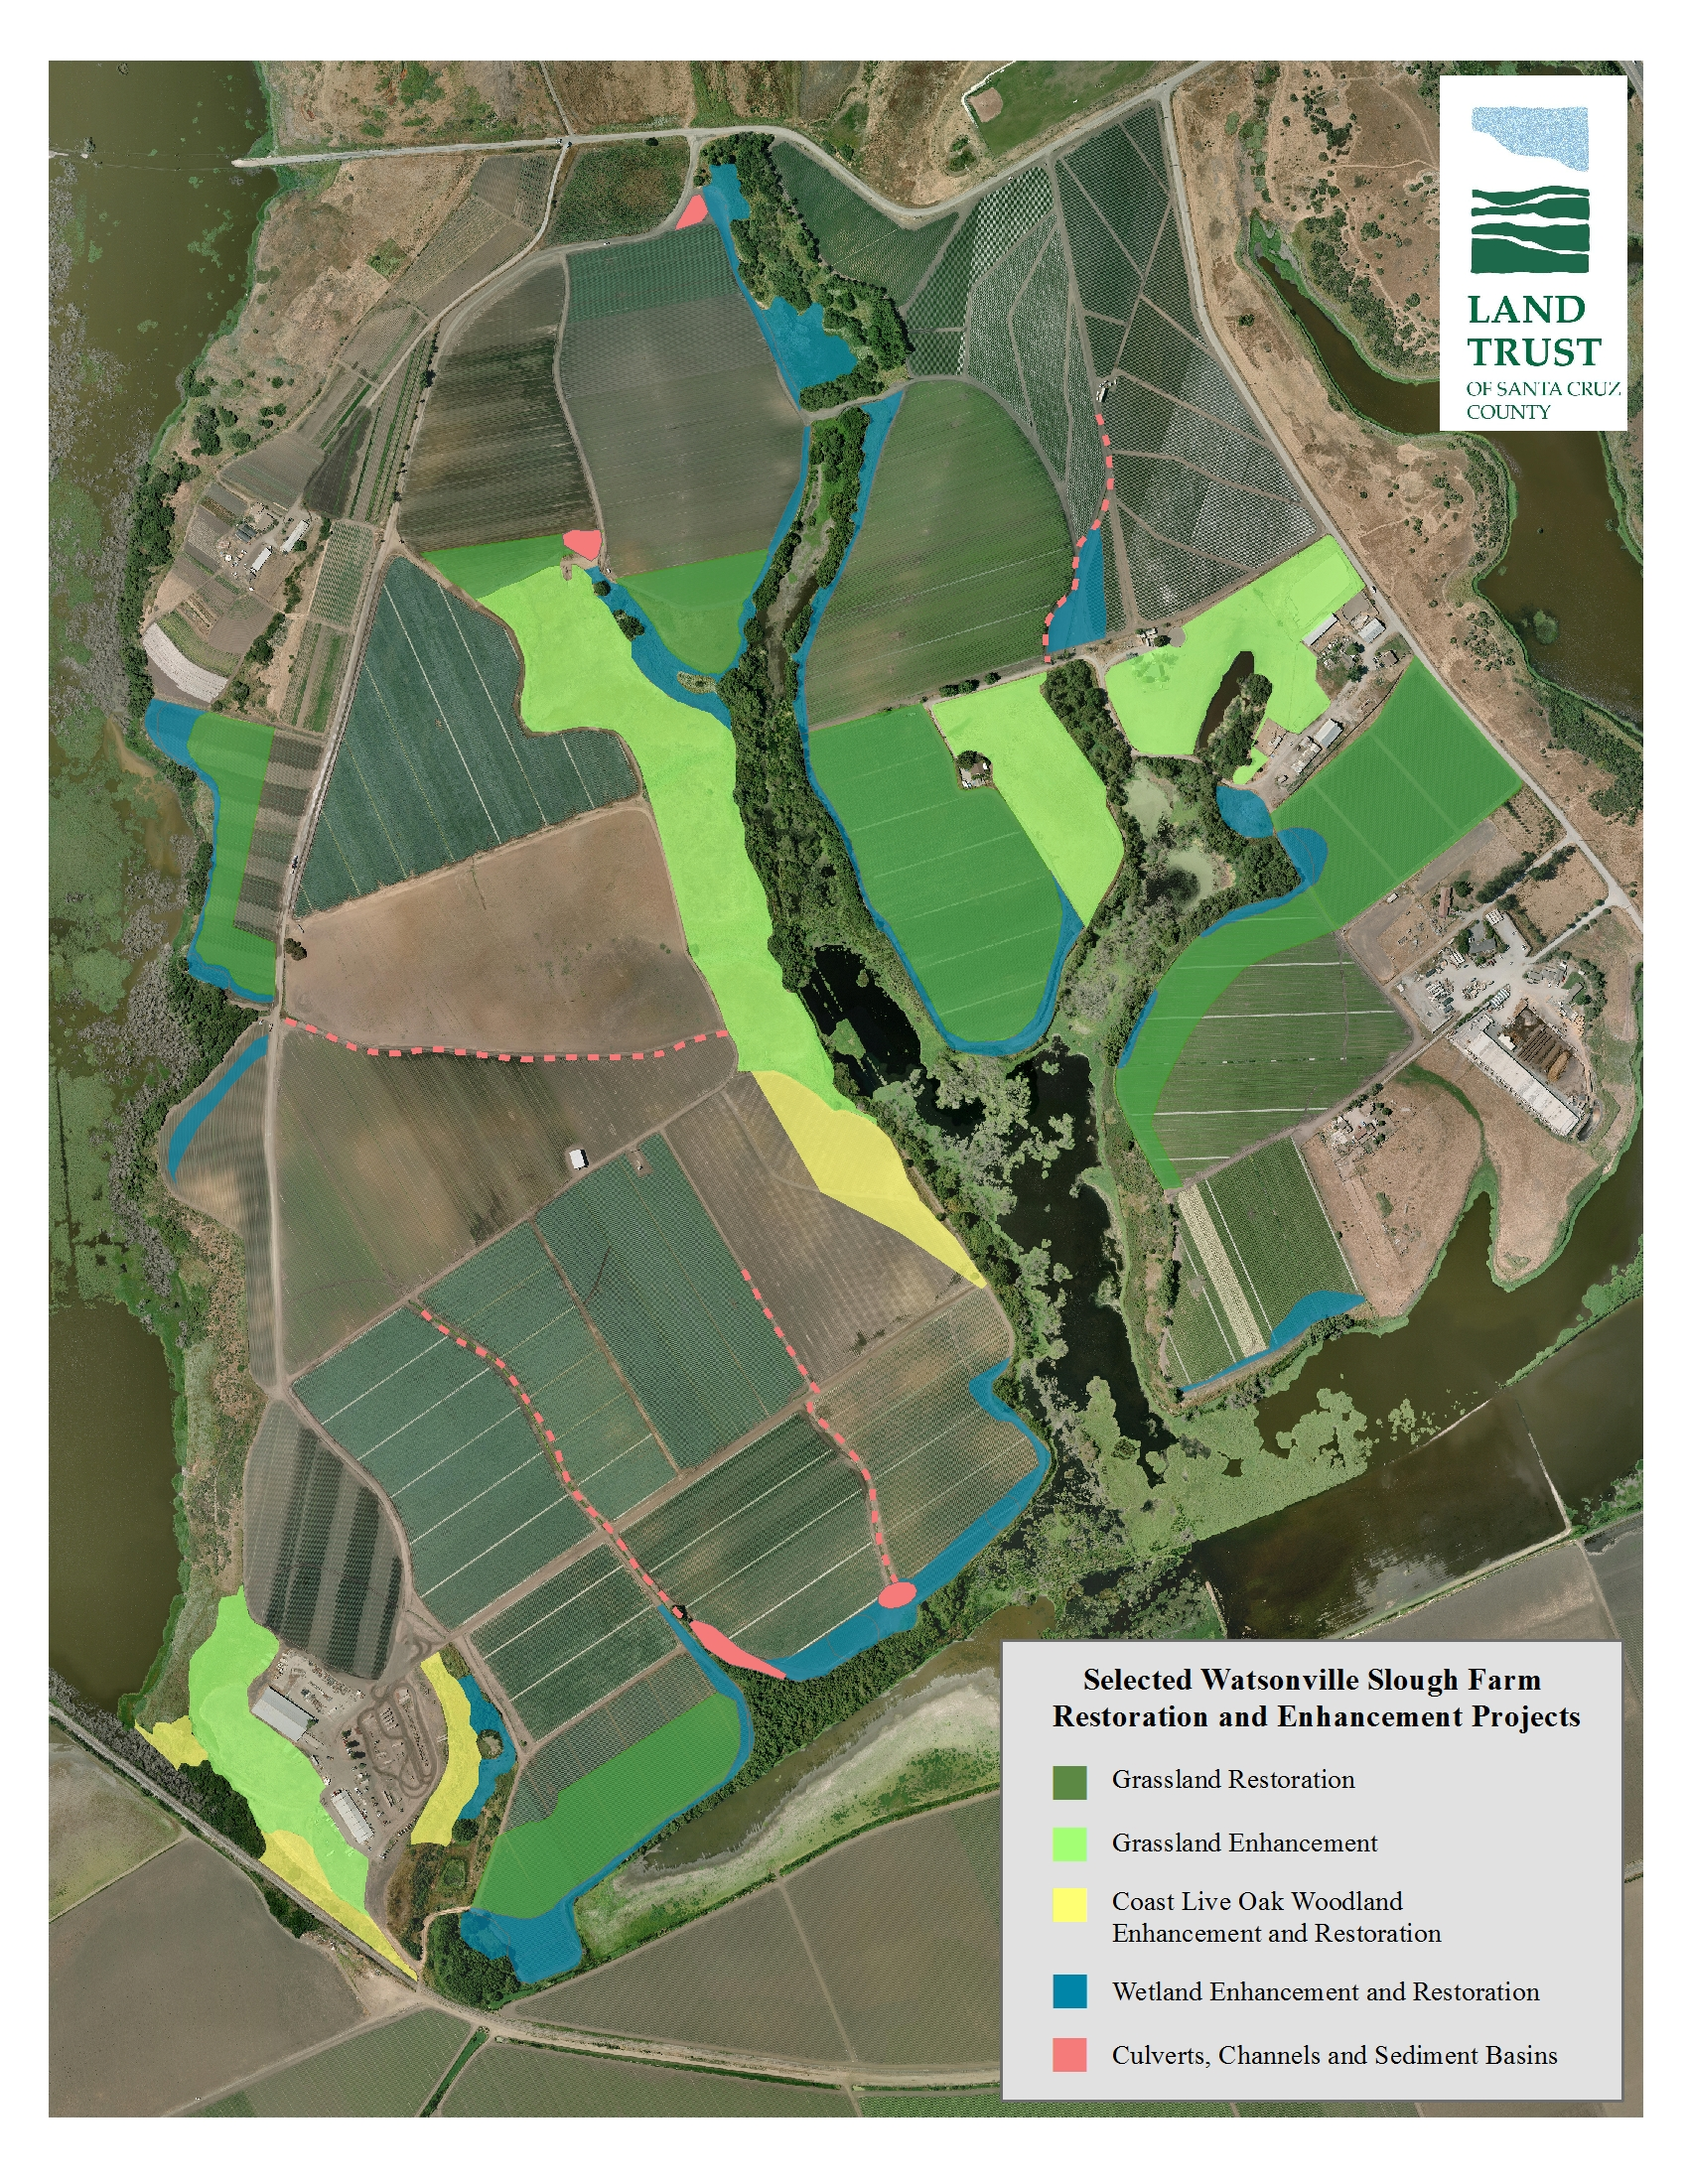 Watsonville Slough Farm Restoration And Enhancement Projects